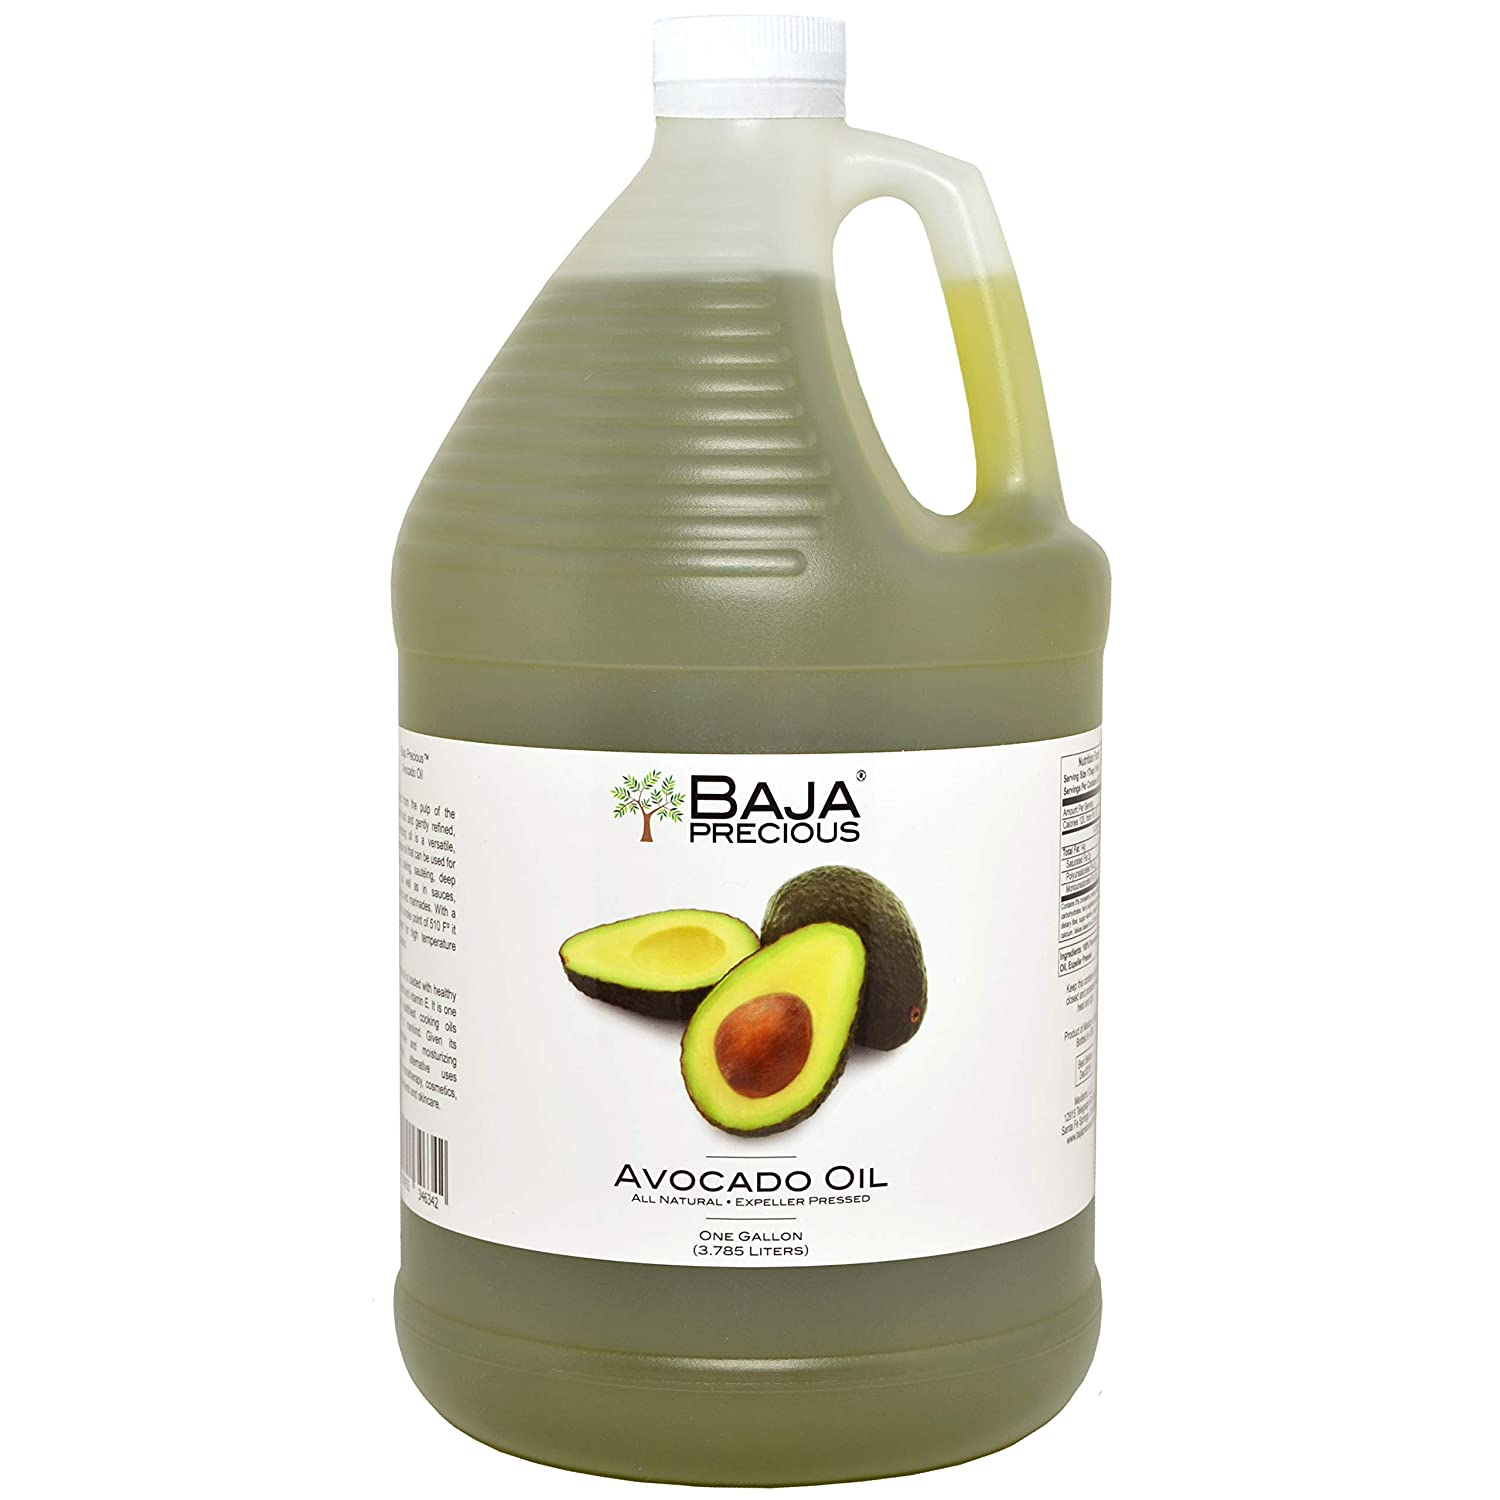 Baja Precious - Avocado Oil, 1 Gallon